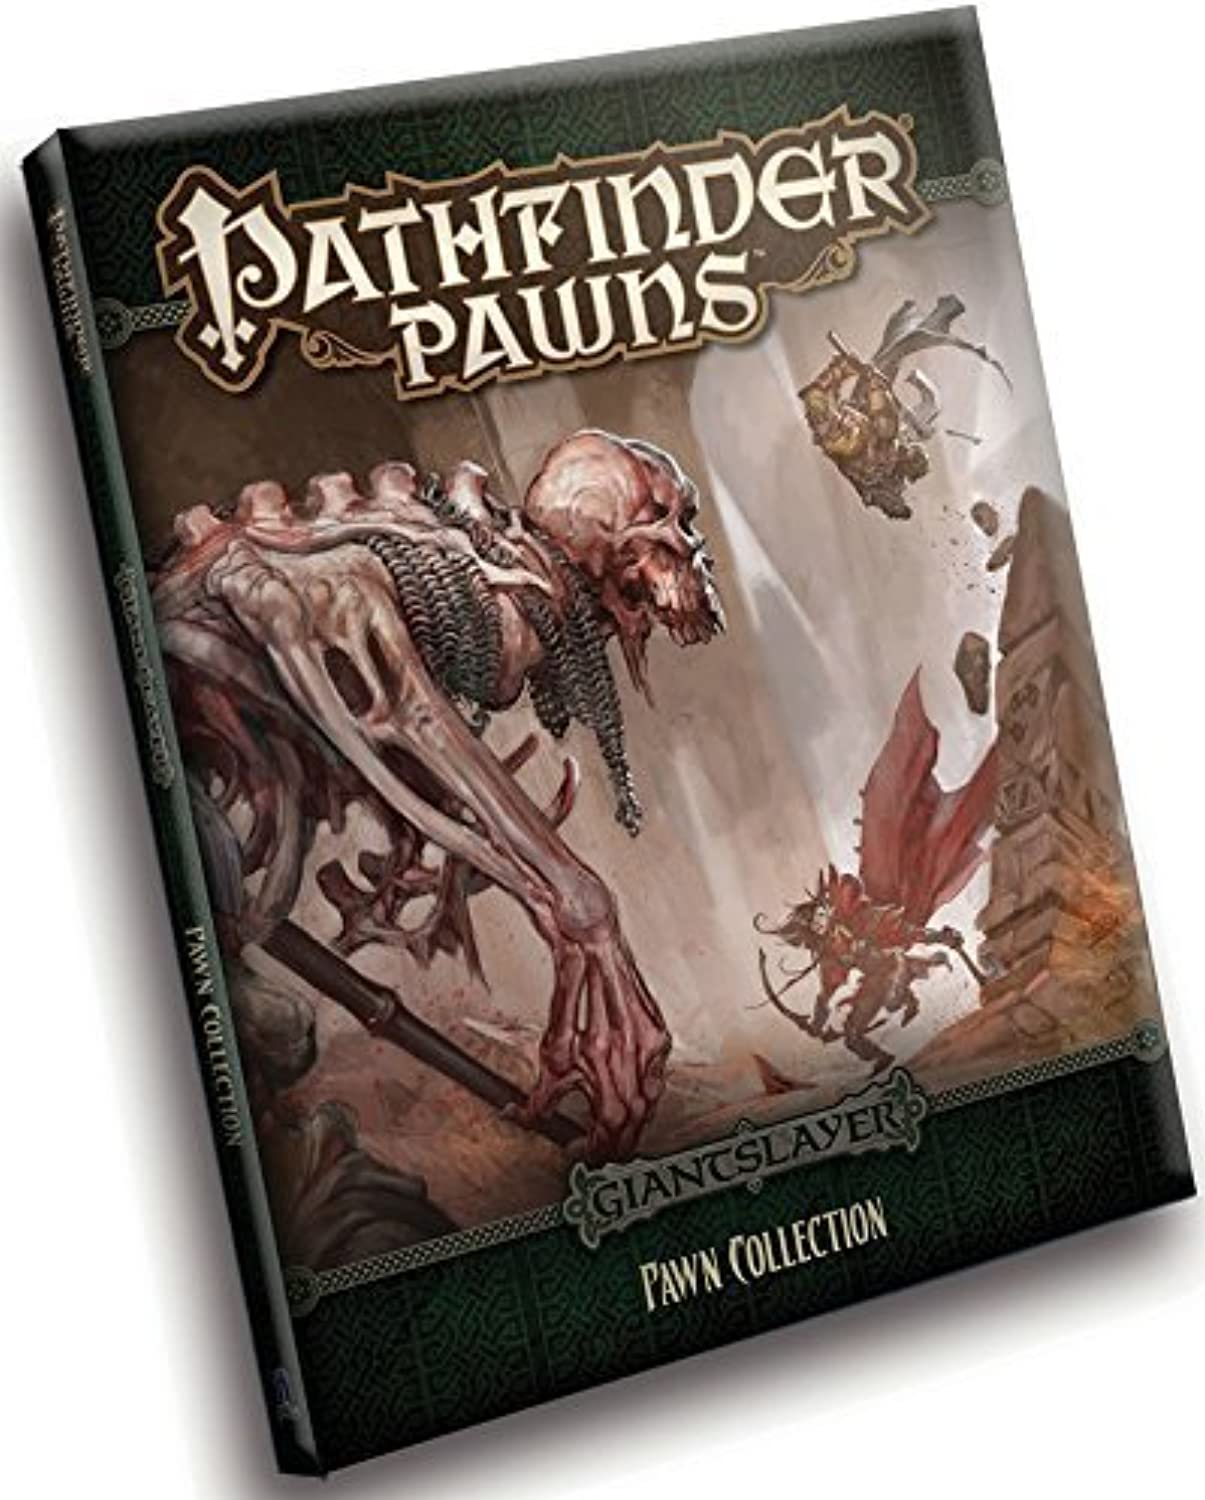 Pathfinder Pawns  Giantslayer Pawn Collection by Rob McCreary (20151013)